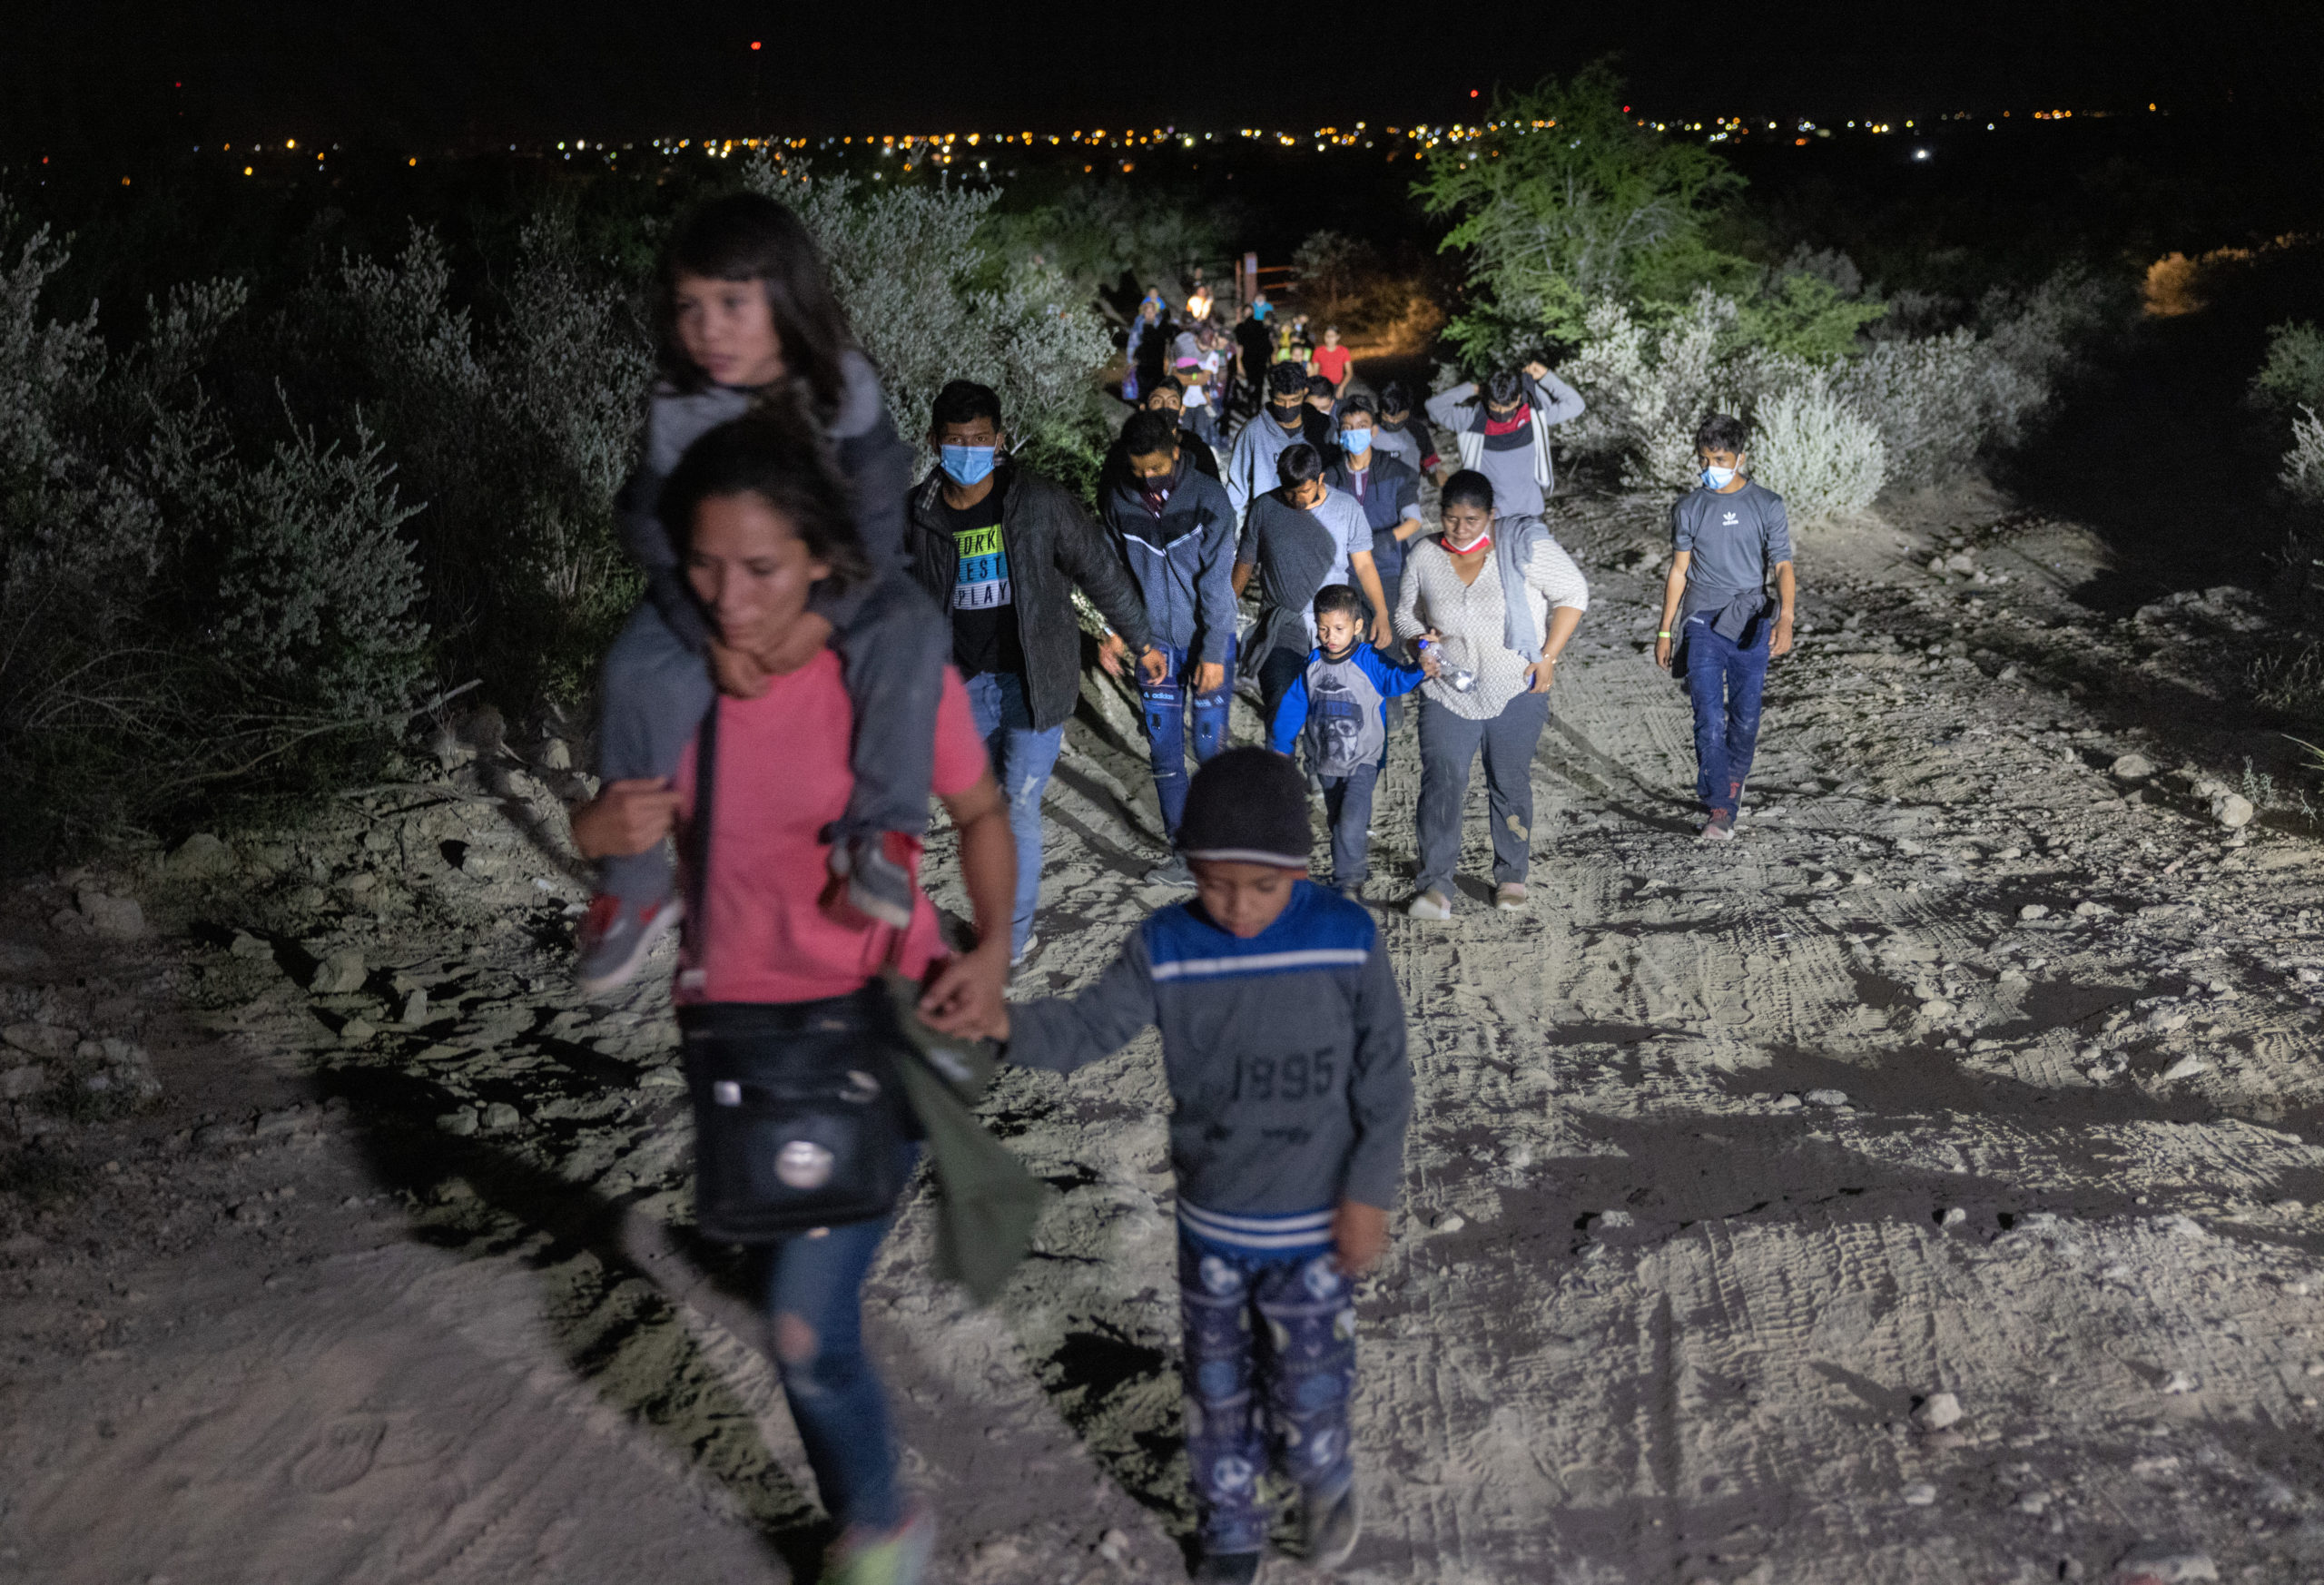 Immigrants walk towards a U.S. border checkpoint after they crossed the Rio Grande from Mexico on Aug. 14 in Roma, Texas. (John Moore/Getty Images)